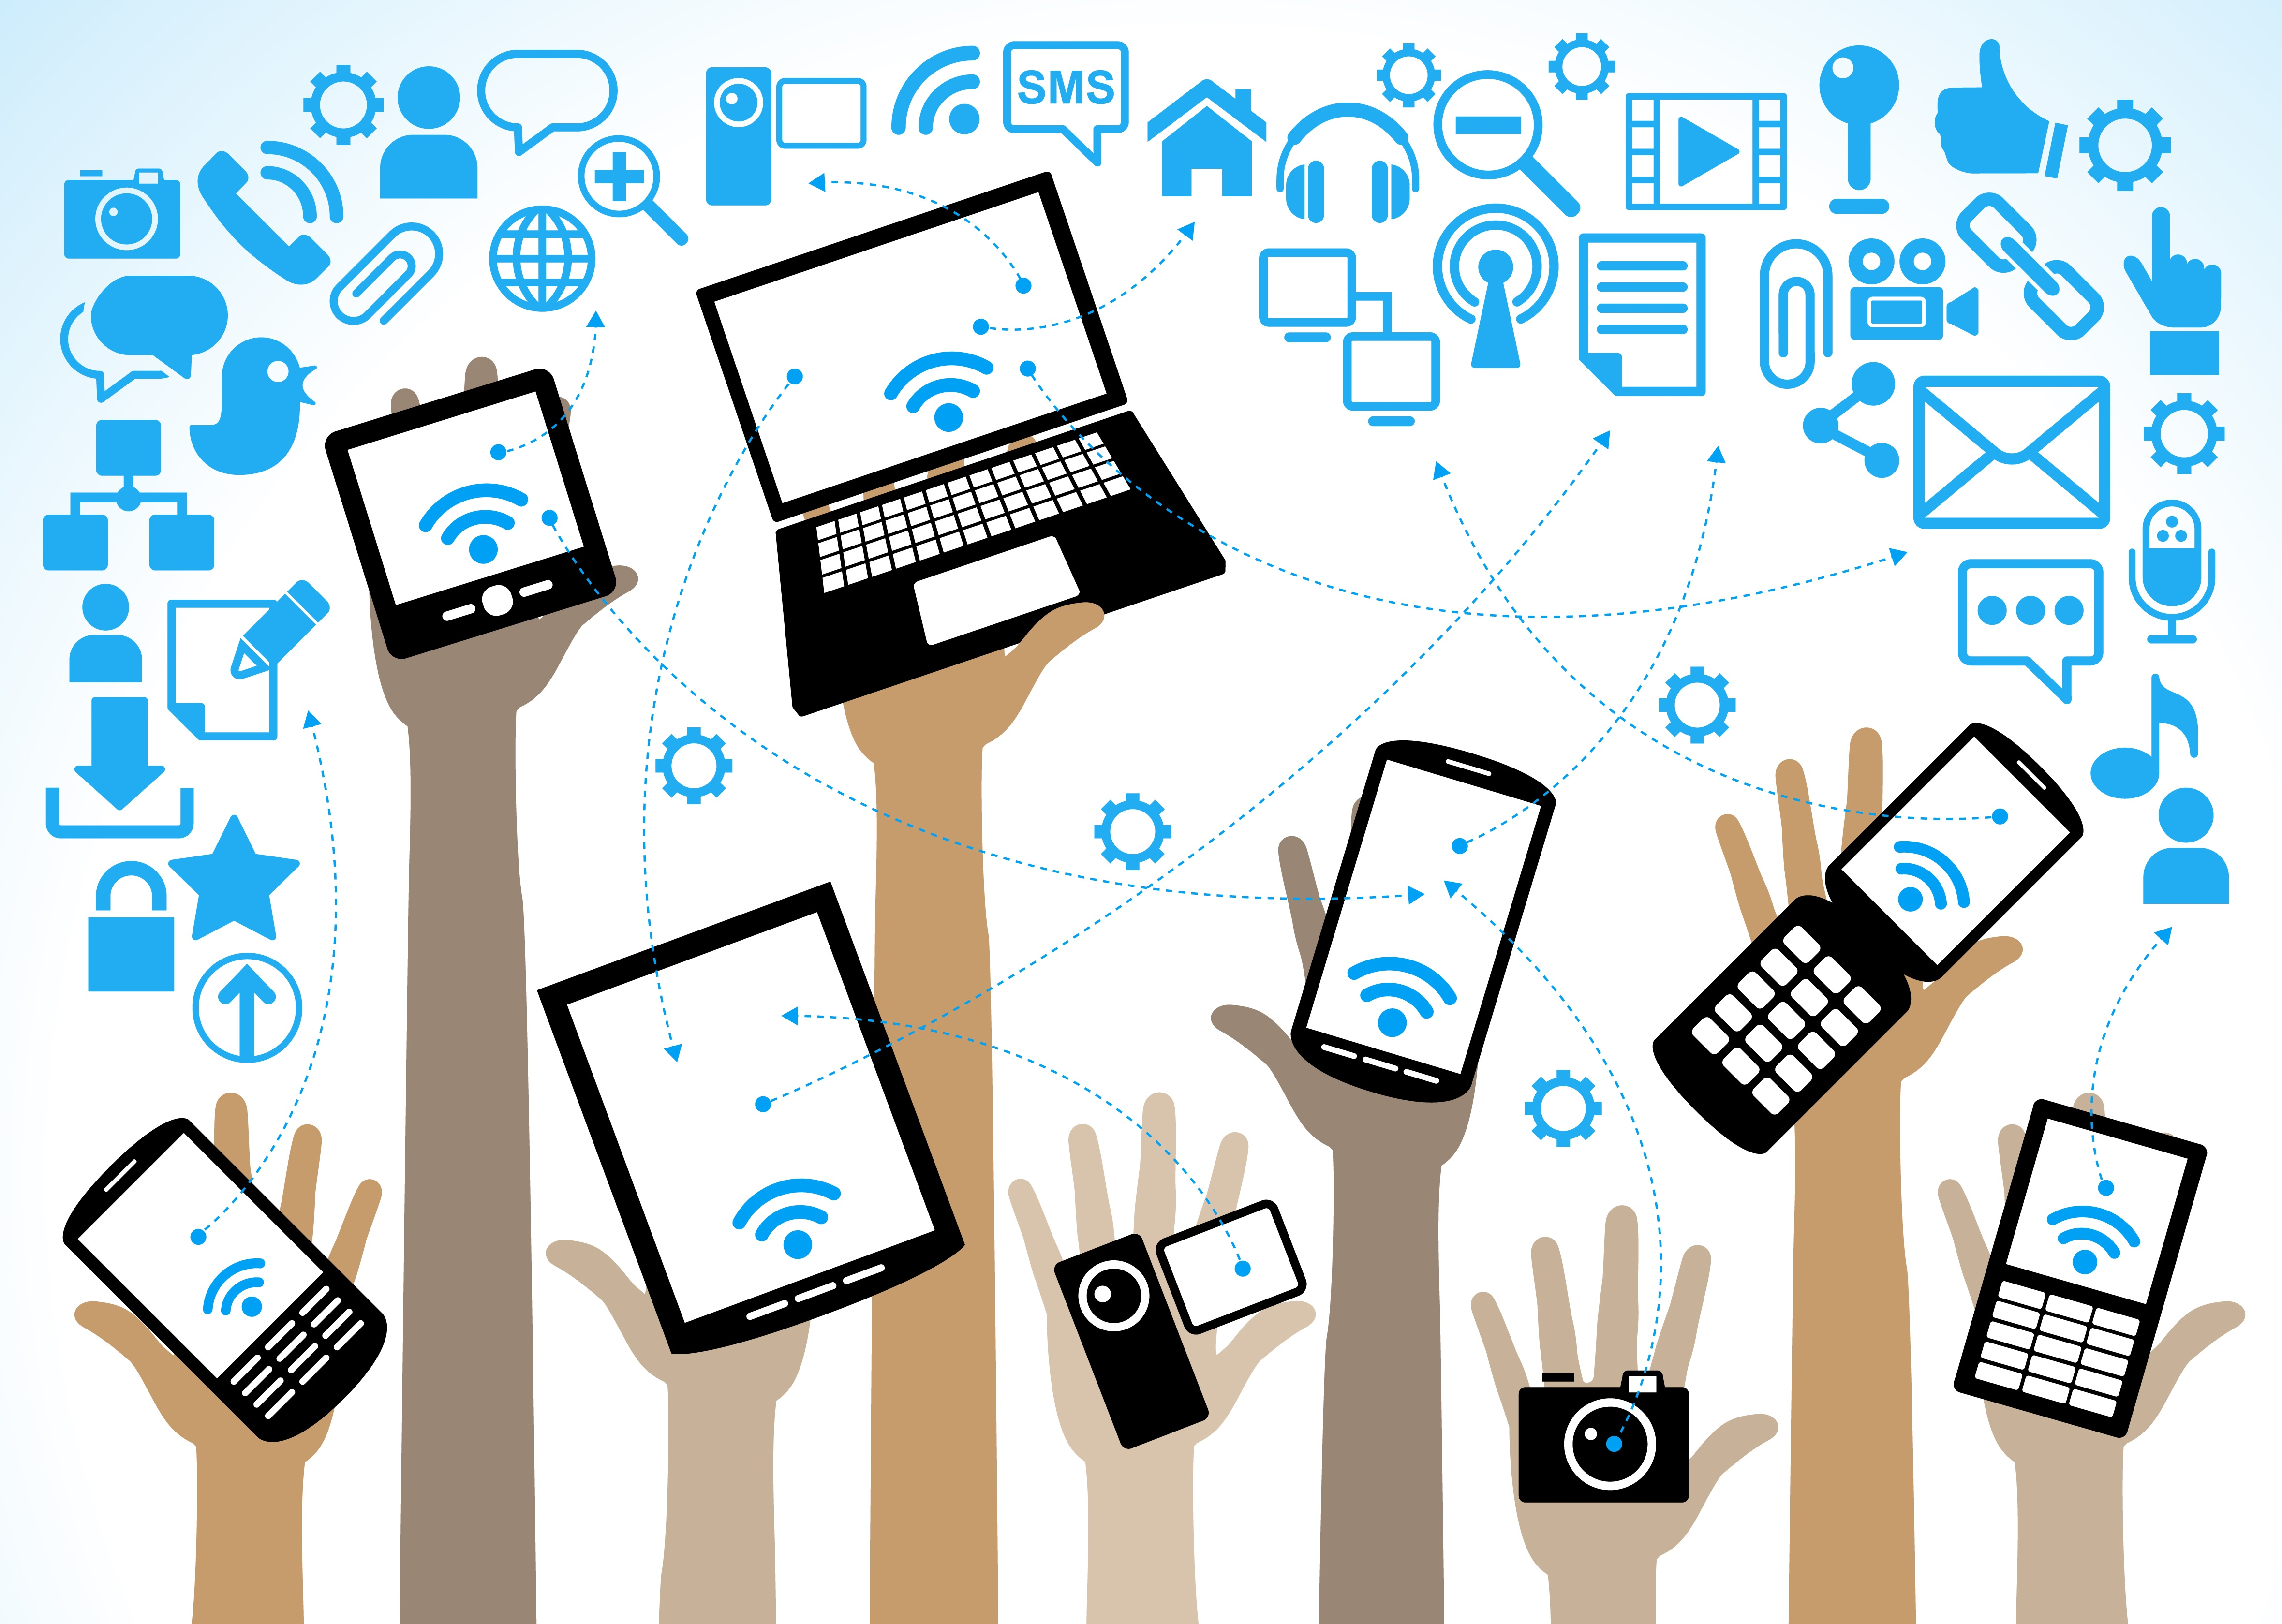 omnichannel marketing and customer engagement